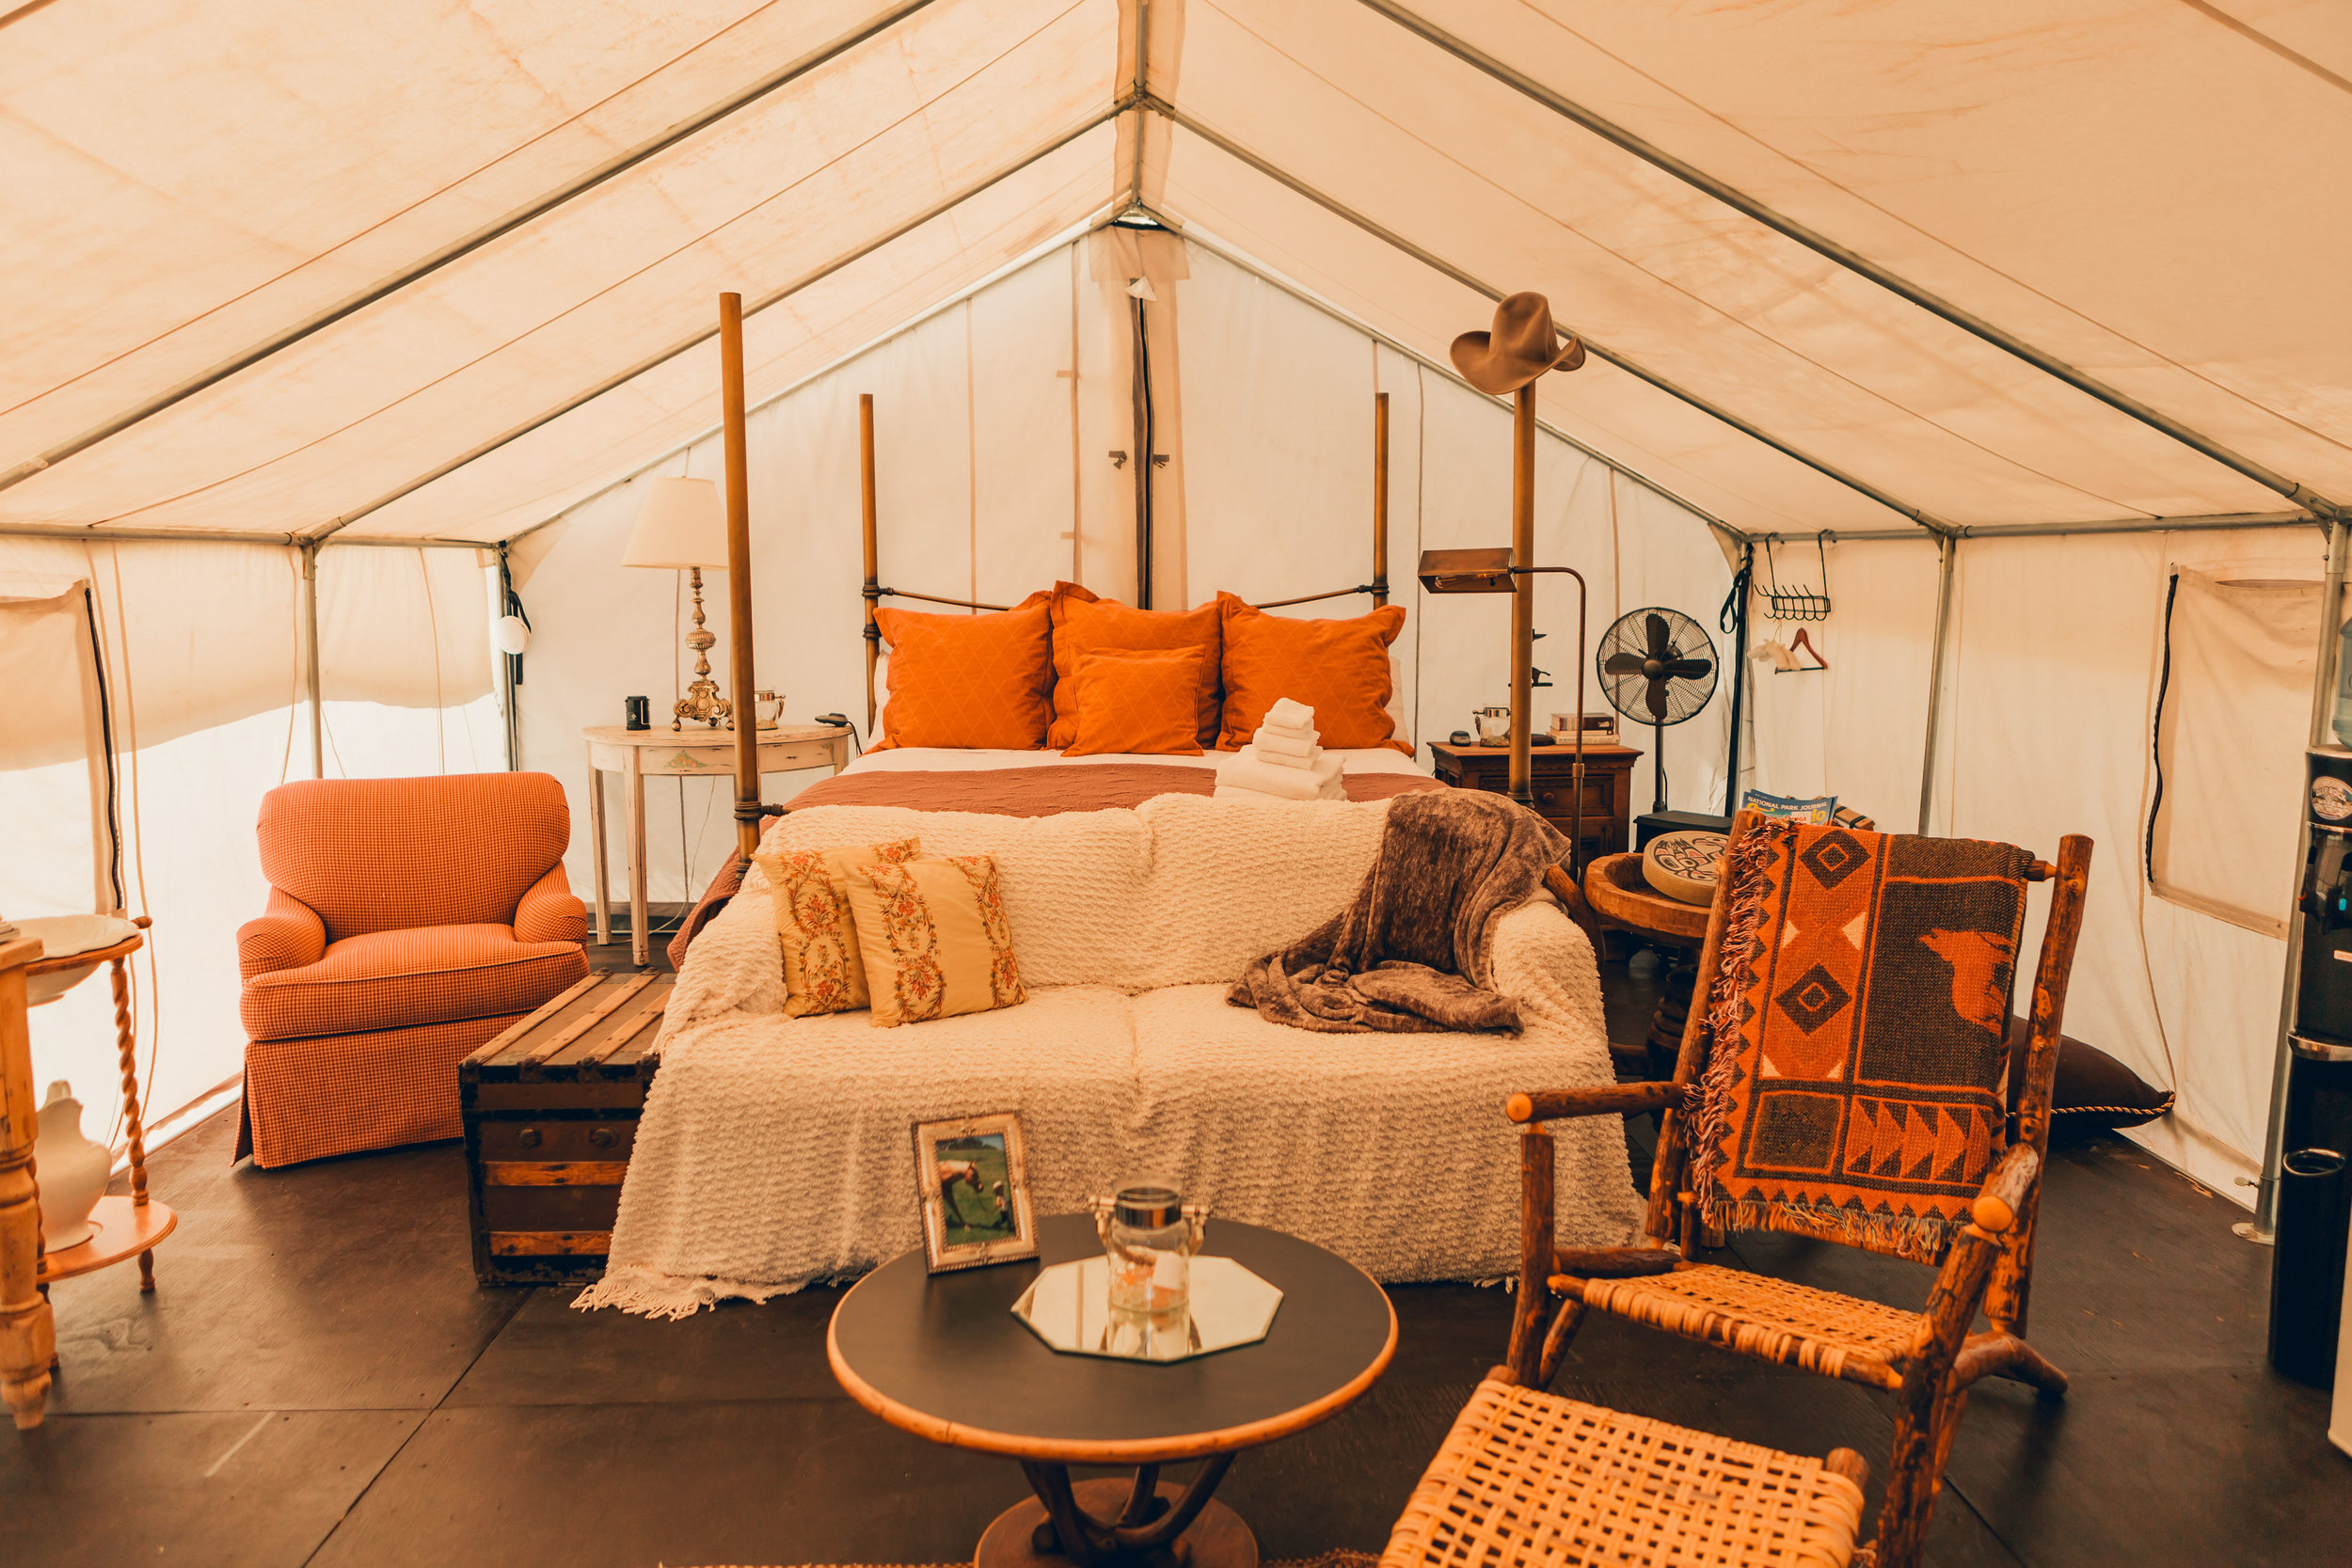 Glamping Safari Tent out of Africa